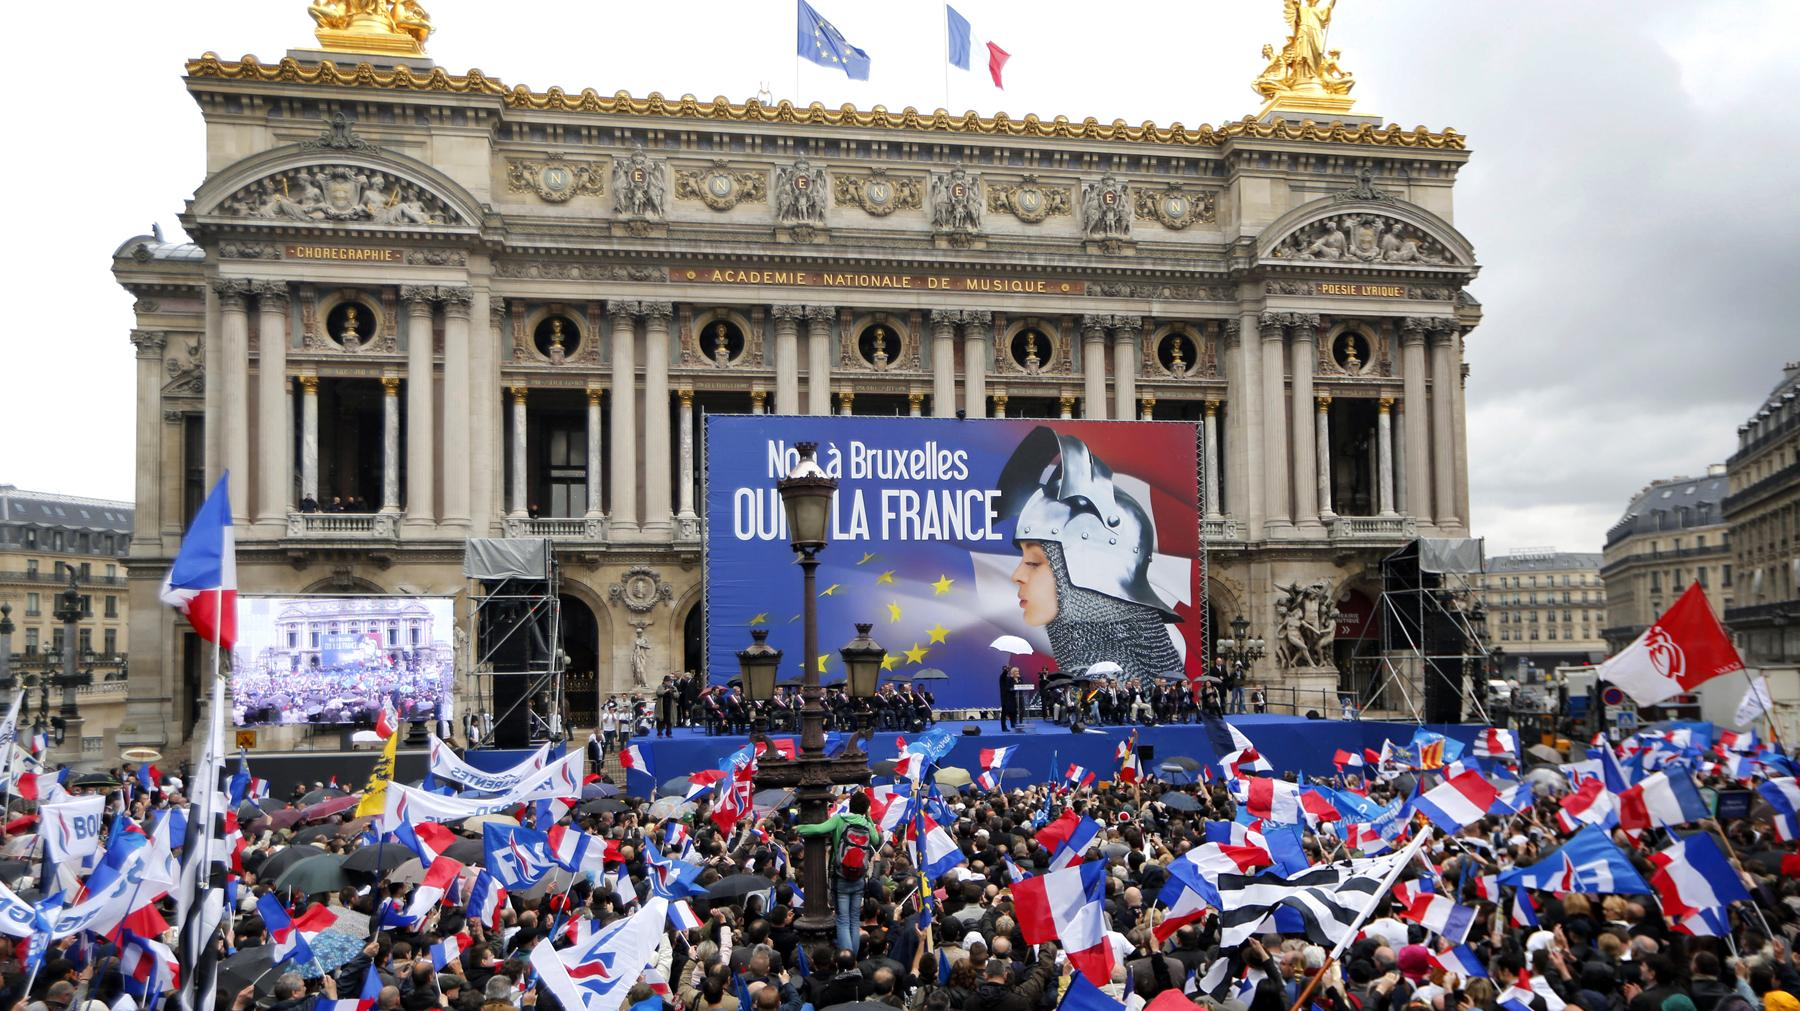 political party in france The main political parties in france include the union for a popular movement, the socialist party, the national front, and the.